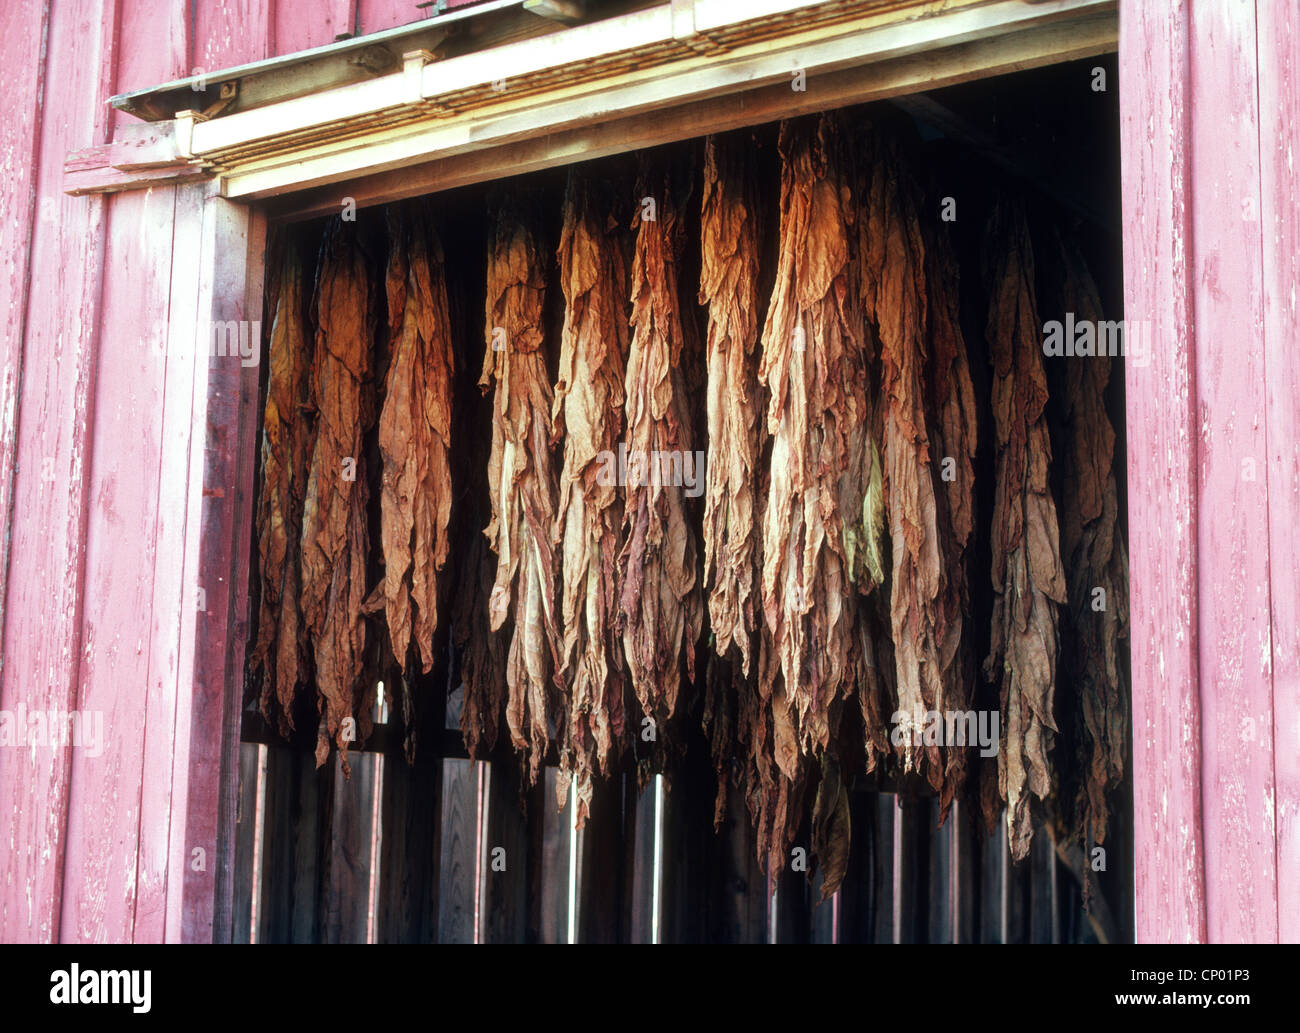 drying tobacco leaves in barn - Stock Image